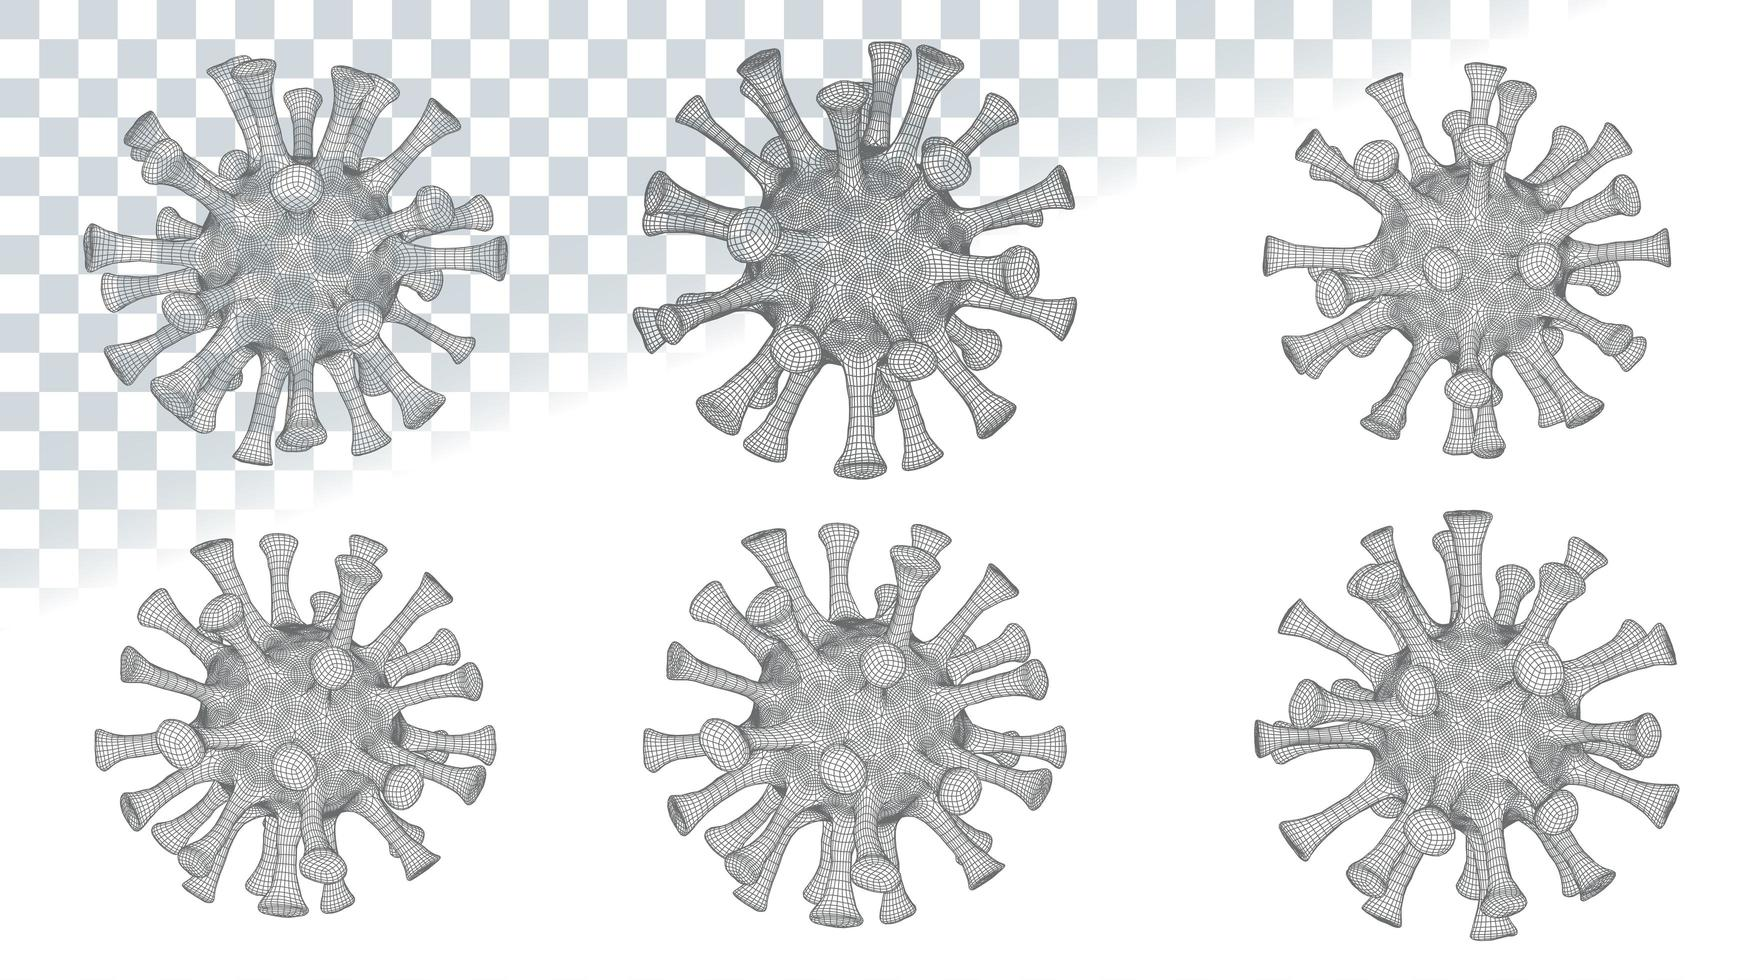 Grey 2019-nCov Low Poly Microscopic Virus vector